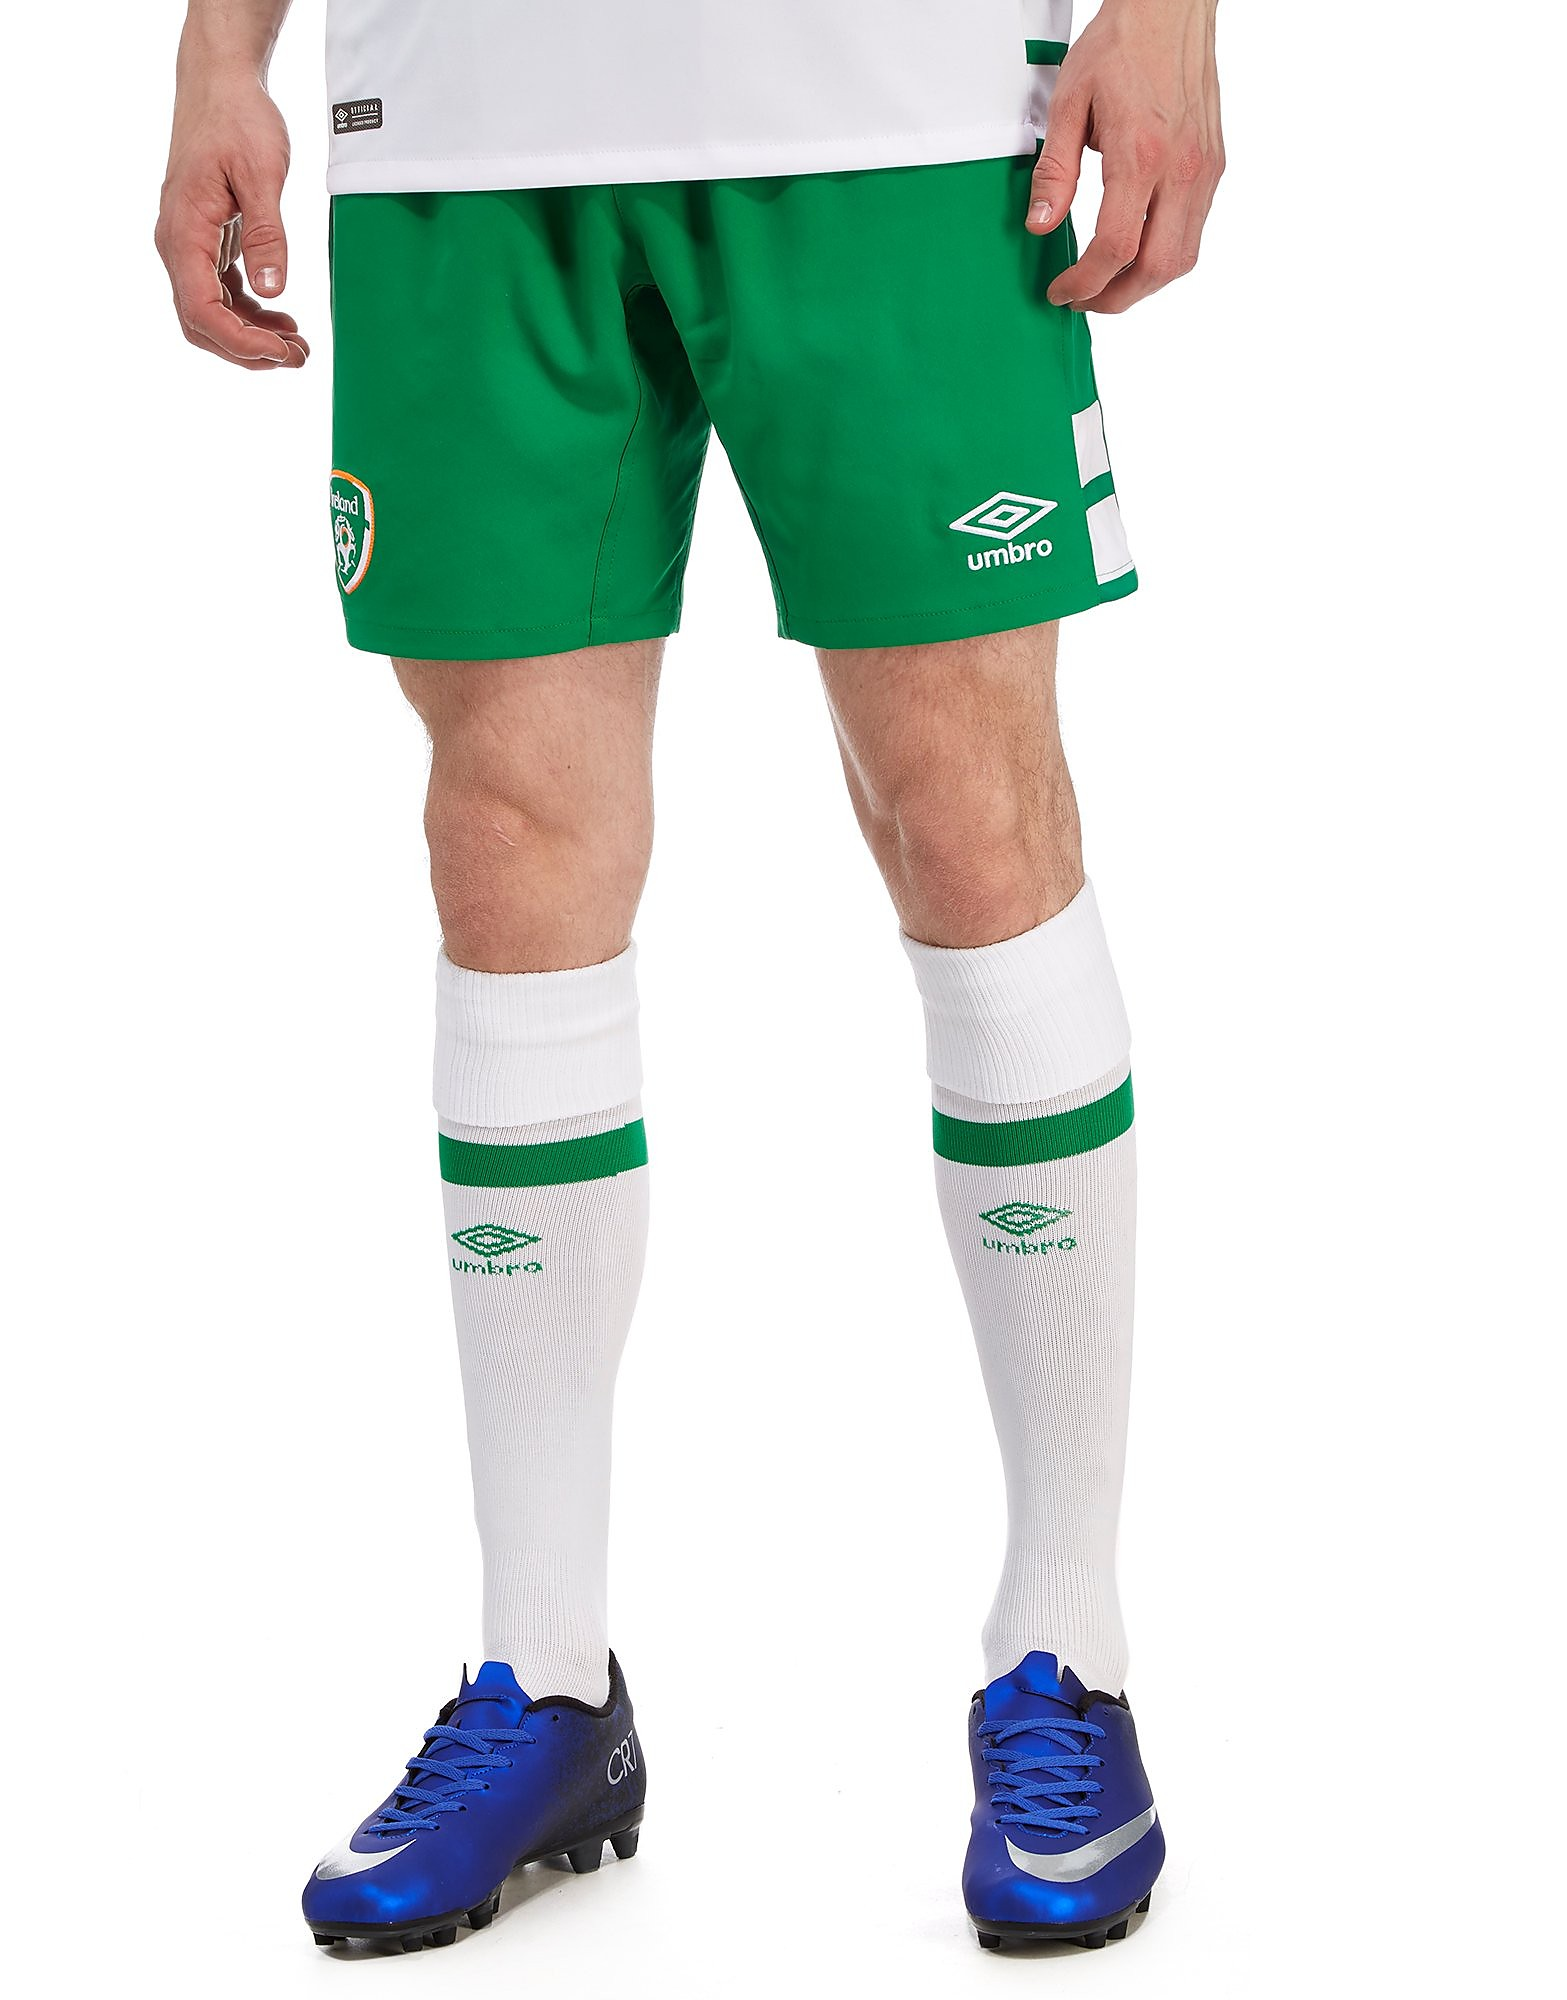 Umbro Republic of Ireland 2016 Away Socks